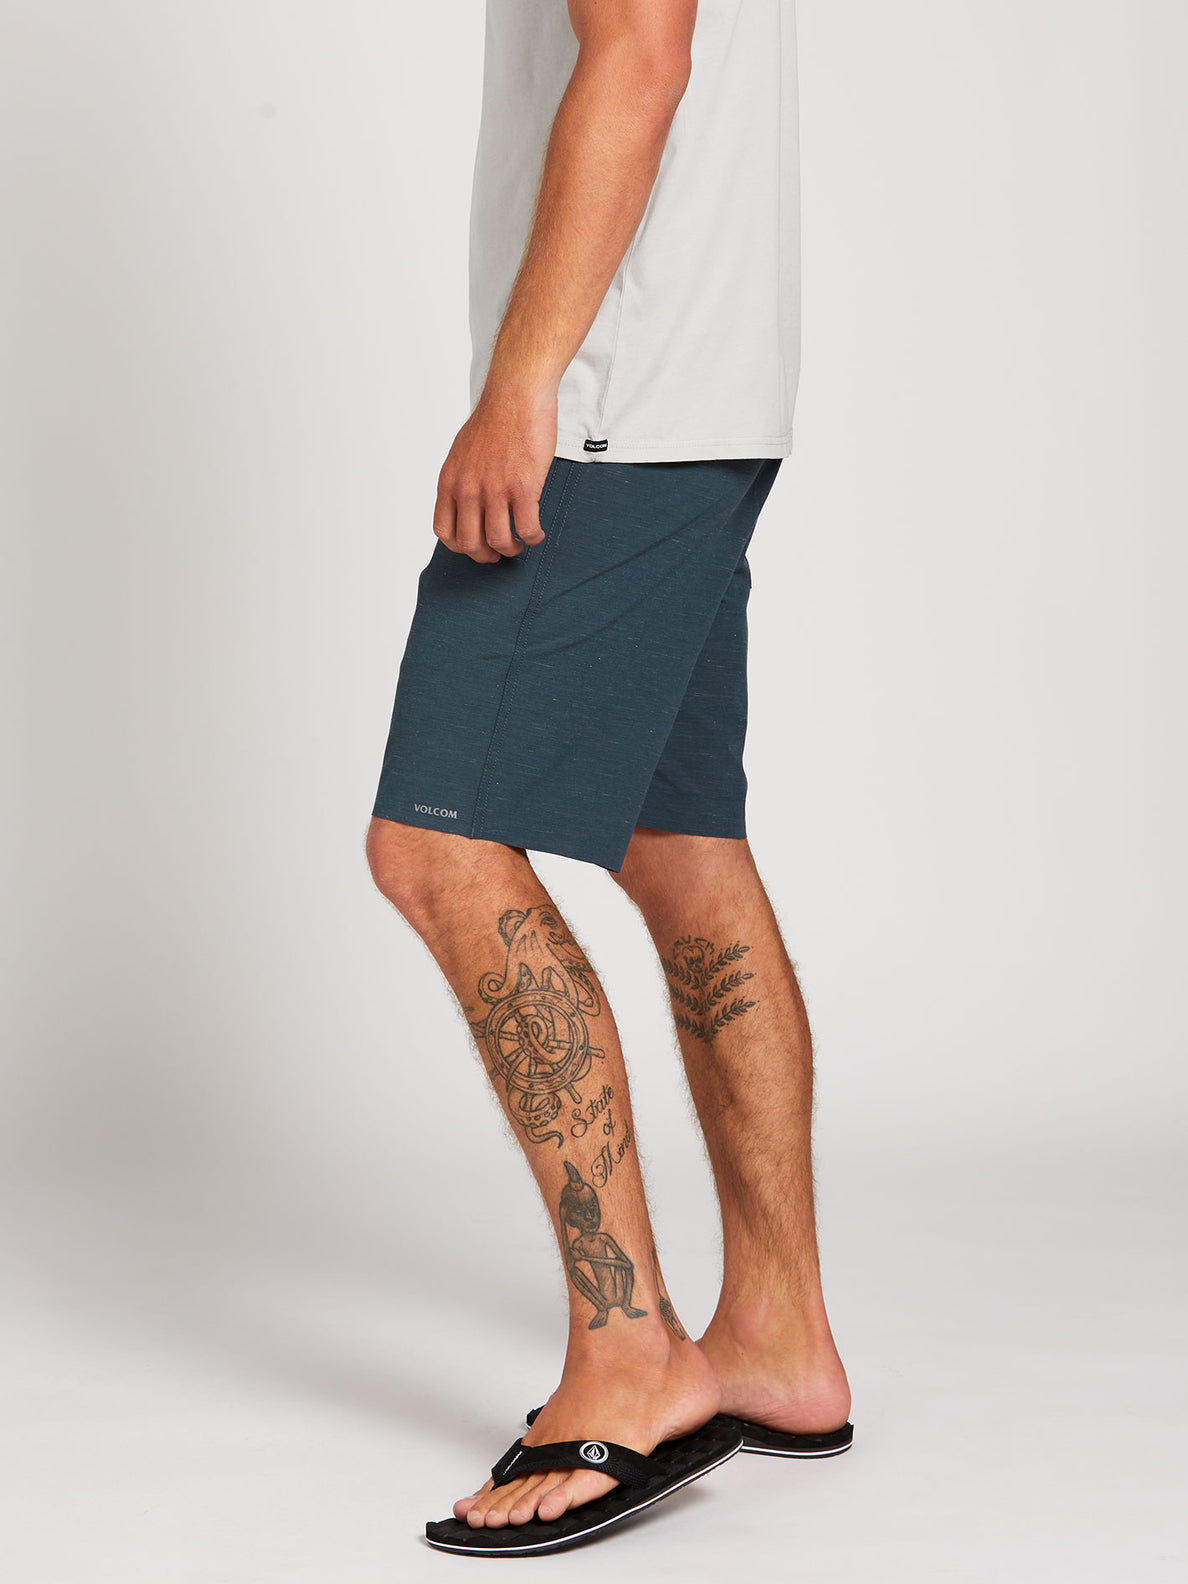 Packasack Lite Shorts - Faded Navy (A3212001_FDN) [3]